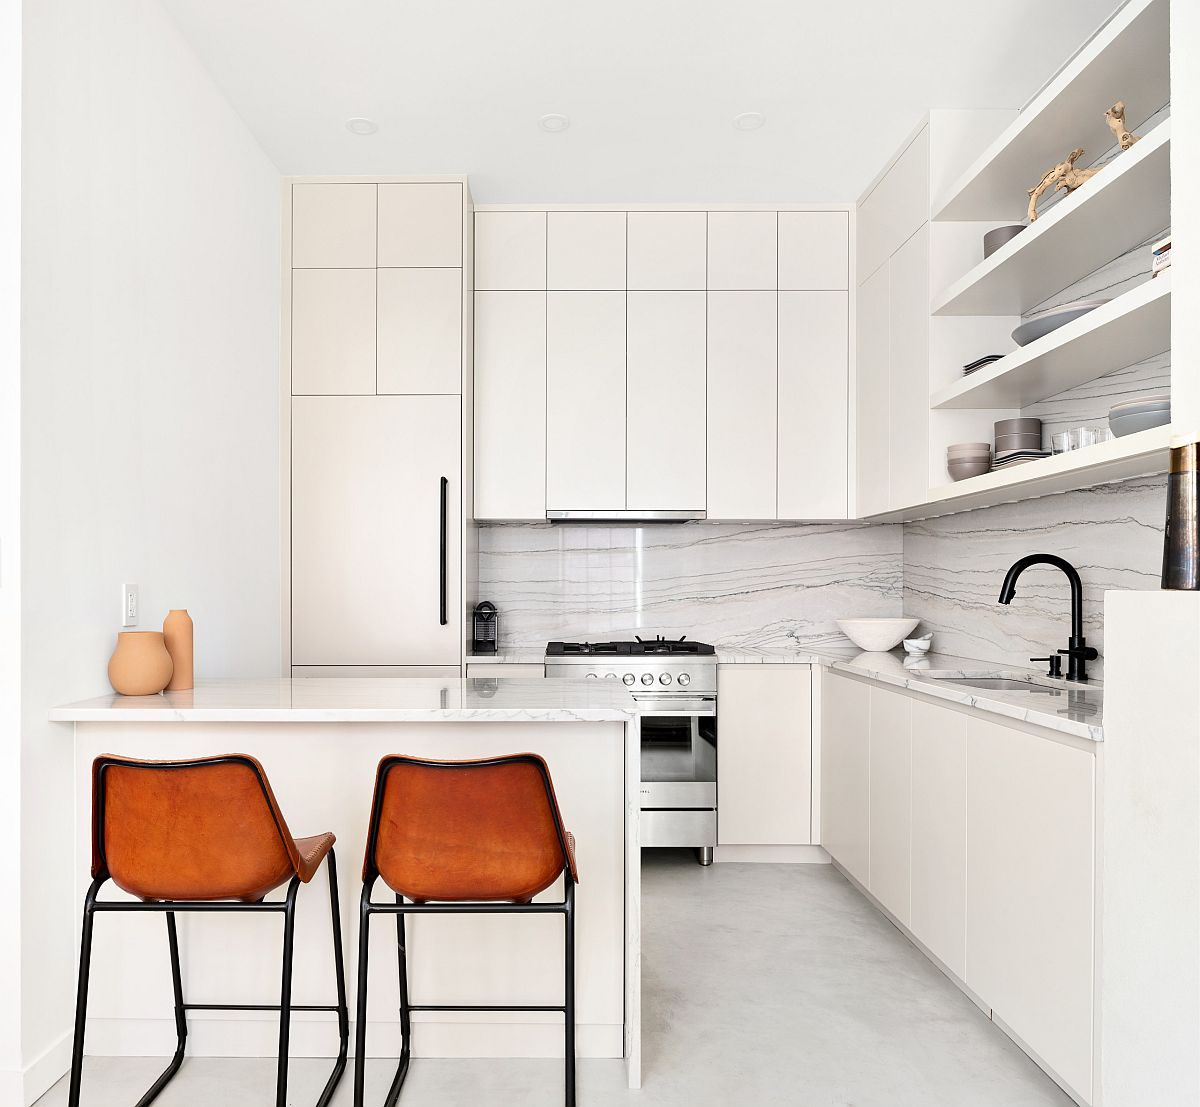 Monochromatic-kitchen-in-white-of-apartment-in-Greenwich-with-bar-stools-that-provide-visual-contrast-64237